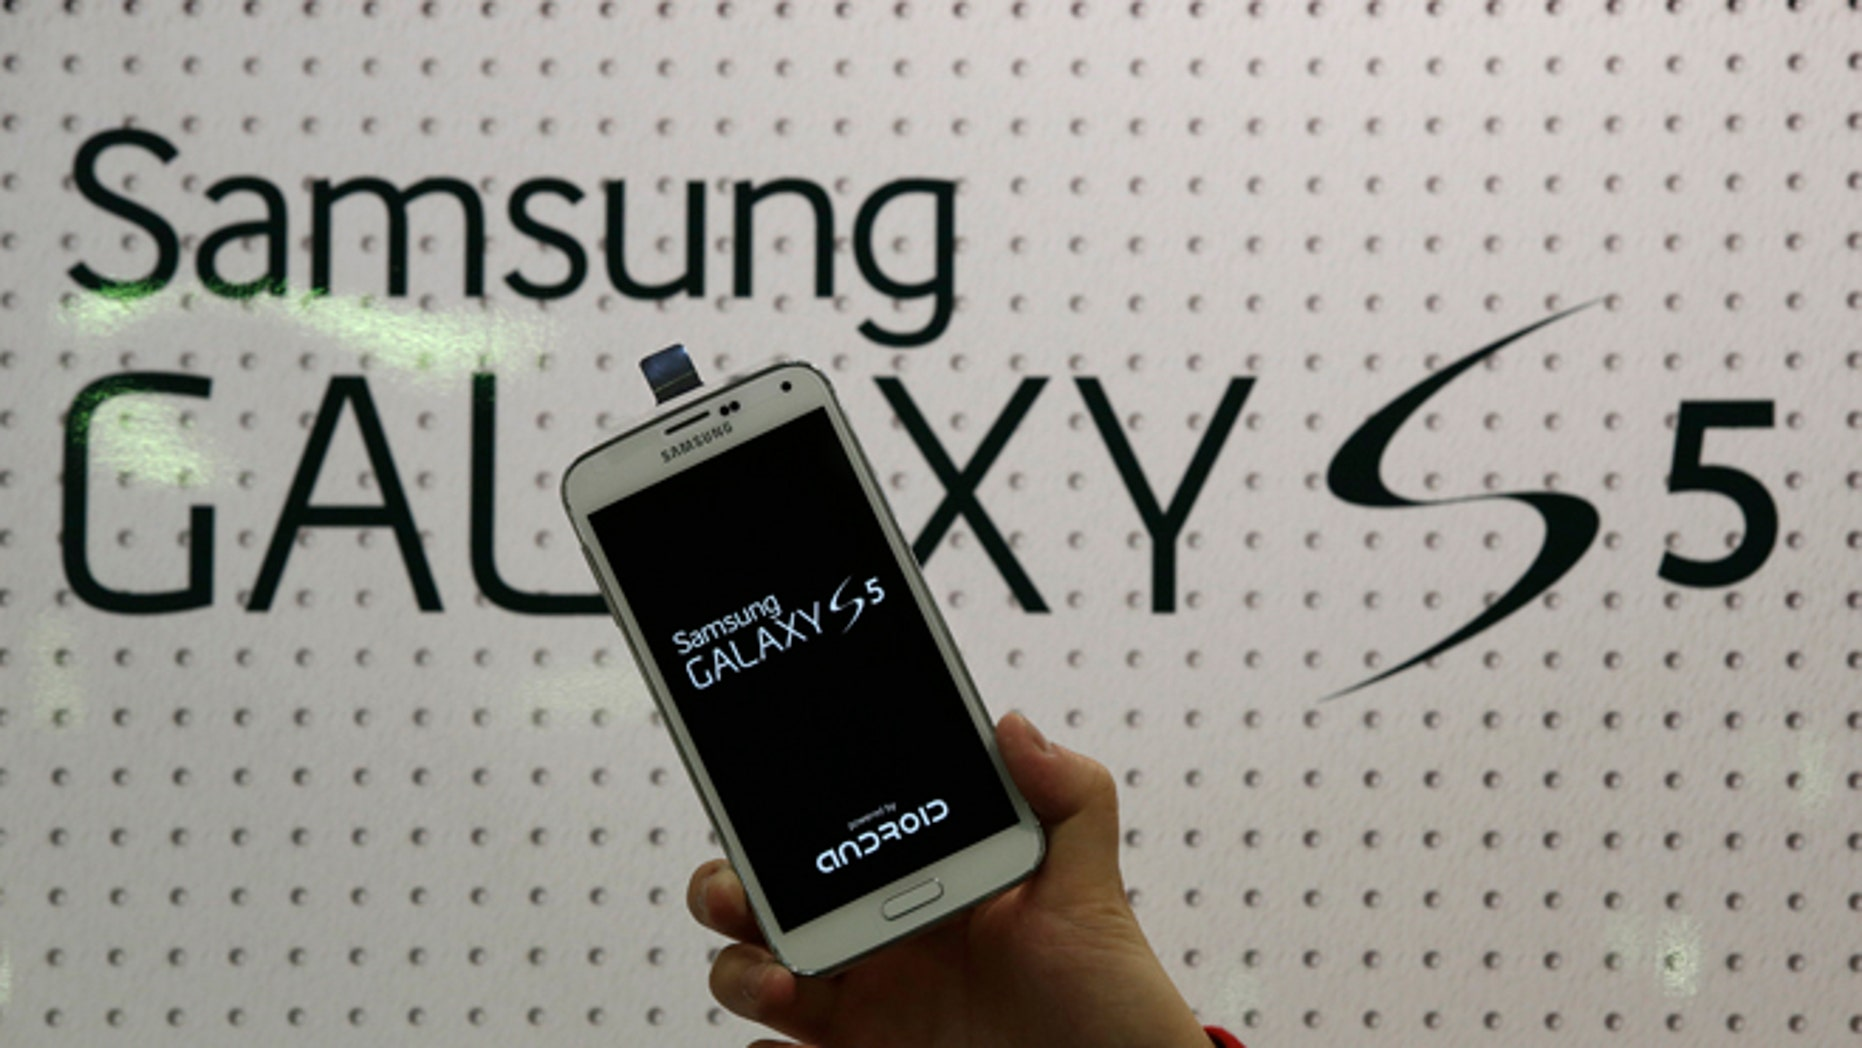 """FILE - An employee shows Samsung's Galaxy S5 smartphone at a mobile phone shop in Seoul, South Korea, in this March 27, 2014 file photo. Samsung Electronics will add two safeguards to its latest smartphone in an effort to deter rampant theft of the mobile devices nationwide, the company said Friday April 4, 2014. The world's largest mobile-phone maker said users will be able to activate for free its """"Find My Mobile"""" and """"Reactivation Lock"""" anti-theft features to protect the soon-to-be-released Galaxy 5 S.  (AP Photo/Lee Jin-man, File)"""